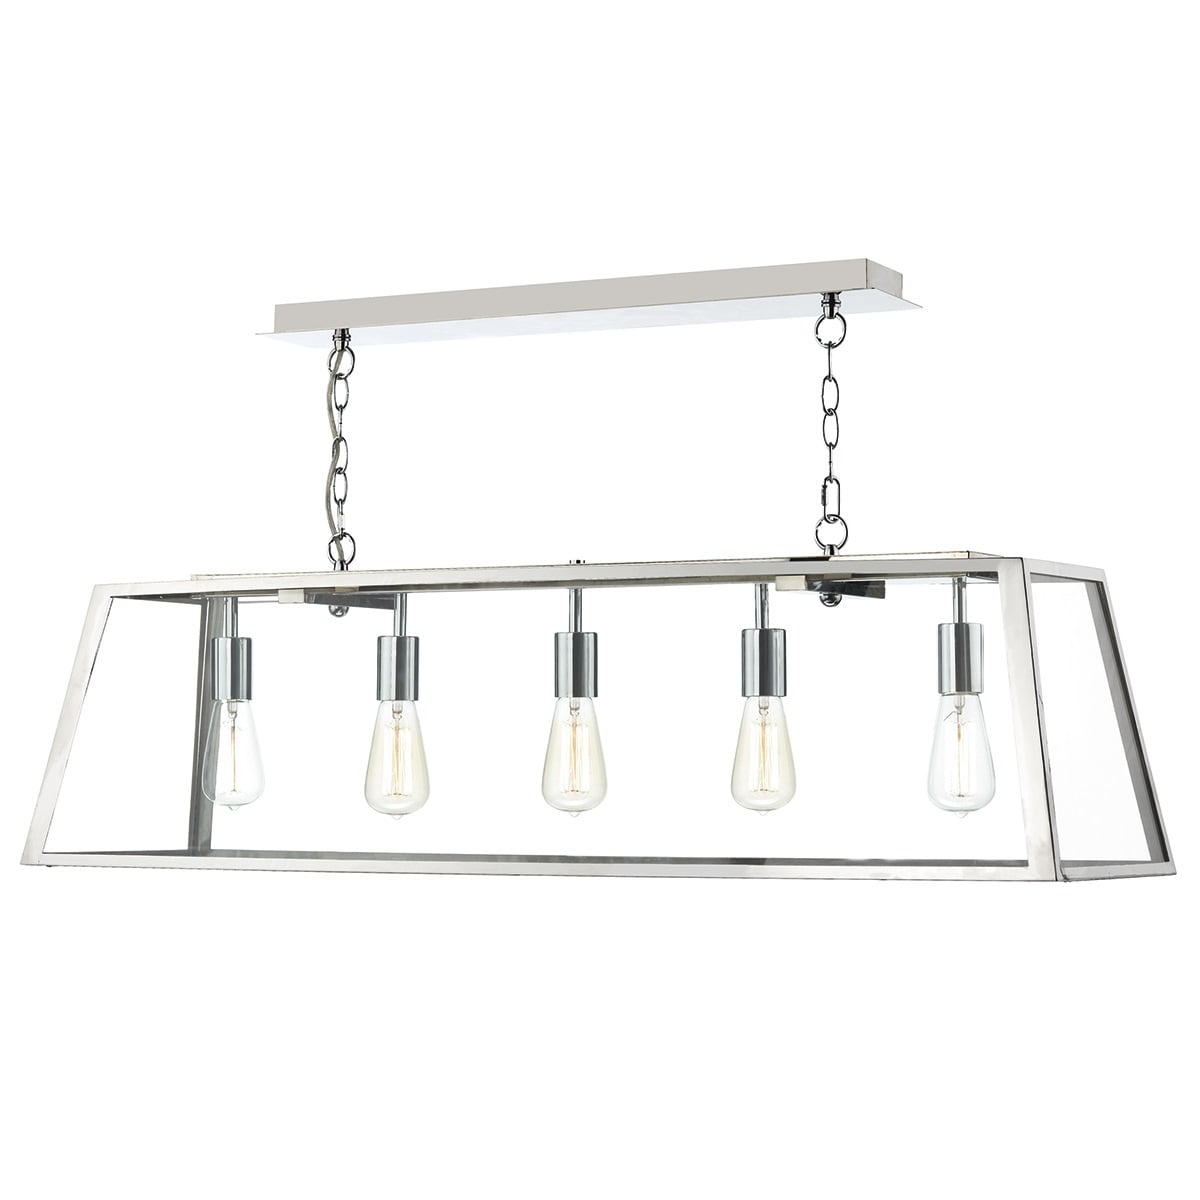 ACA0544 Academy 5 Light Box Pendant In Stainless Steel